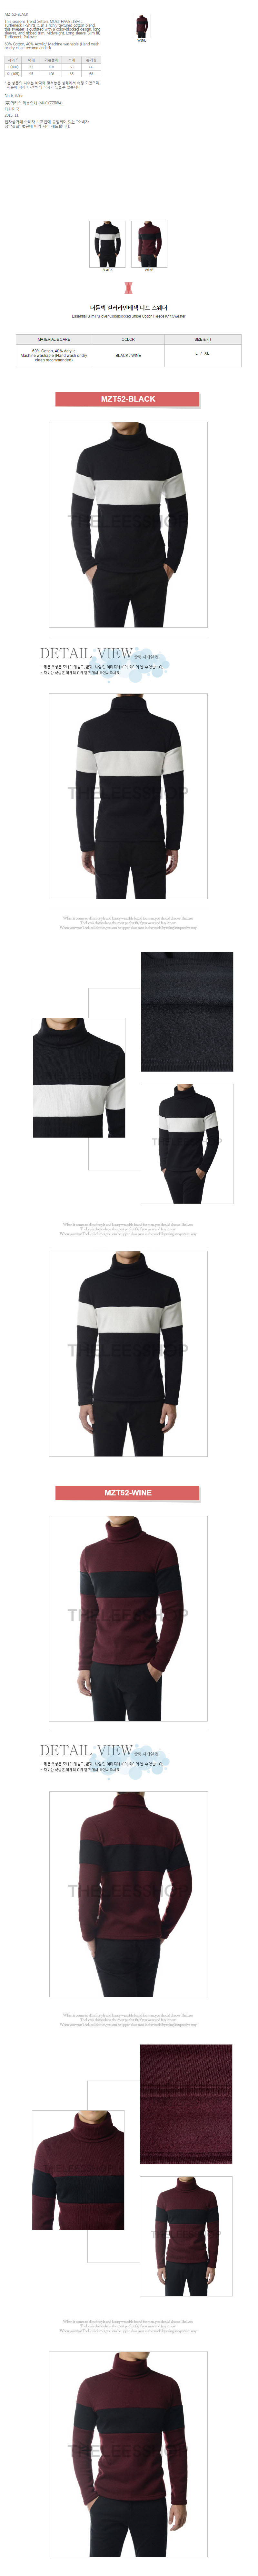 [ KOOLLOOK ] [KoolLook] Knit Turtleneck Sweater MZT52